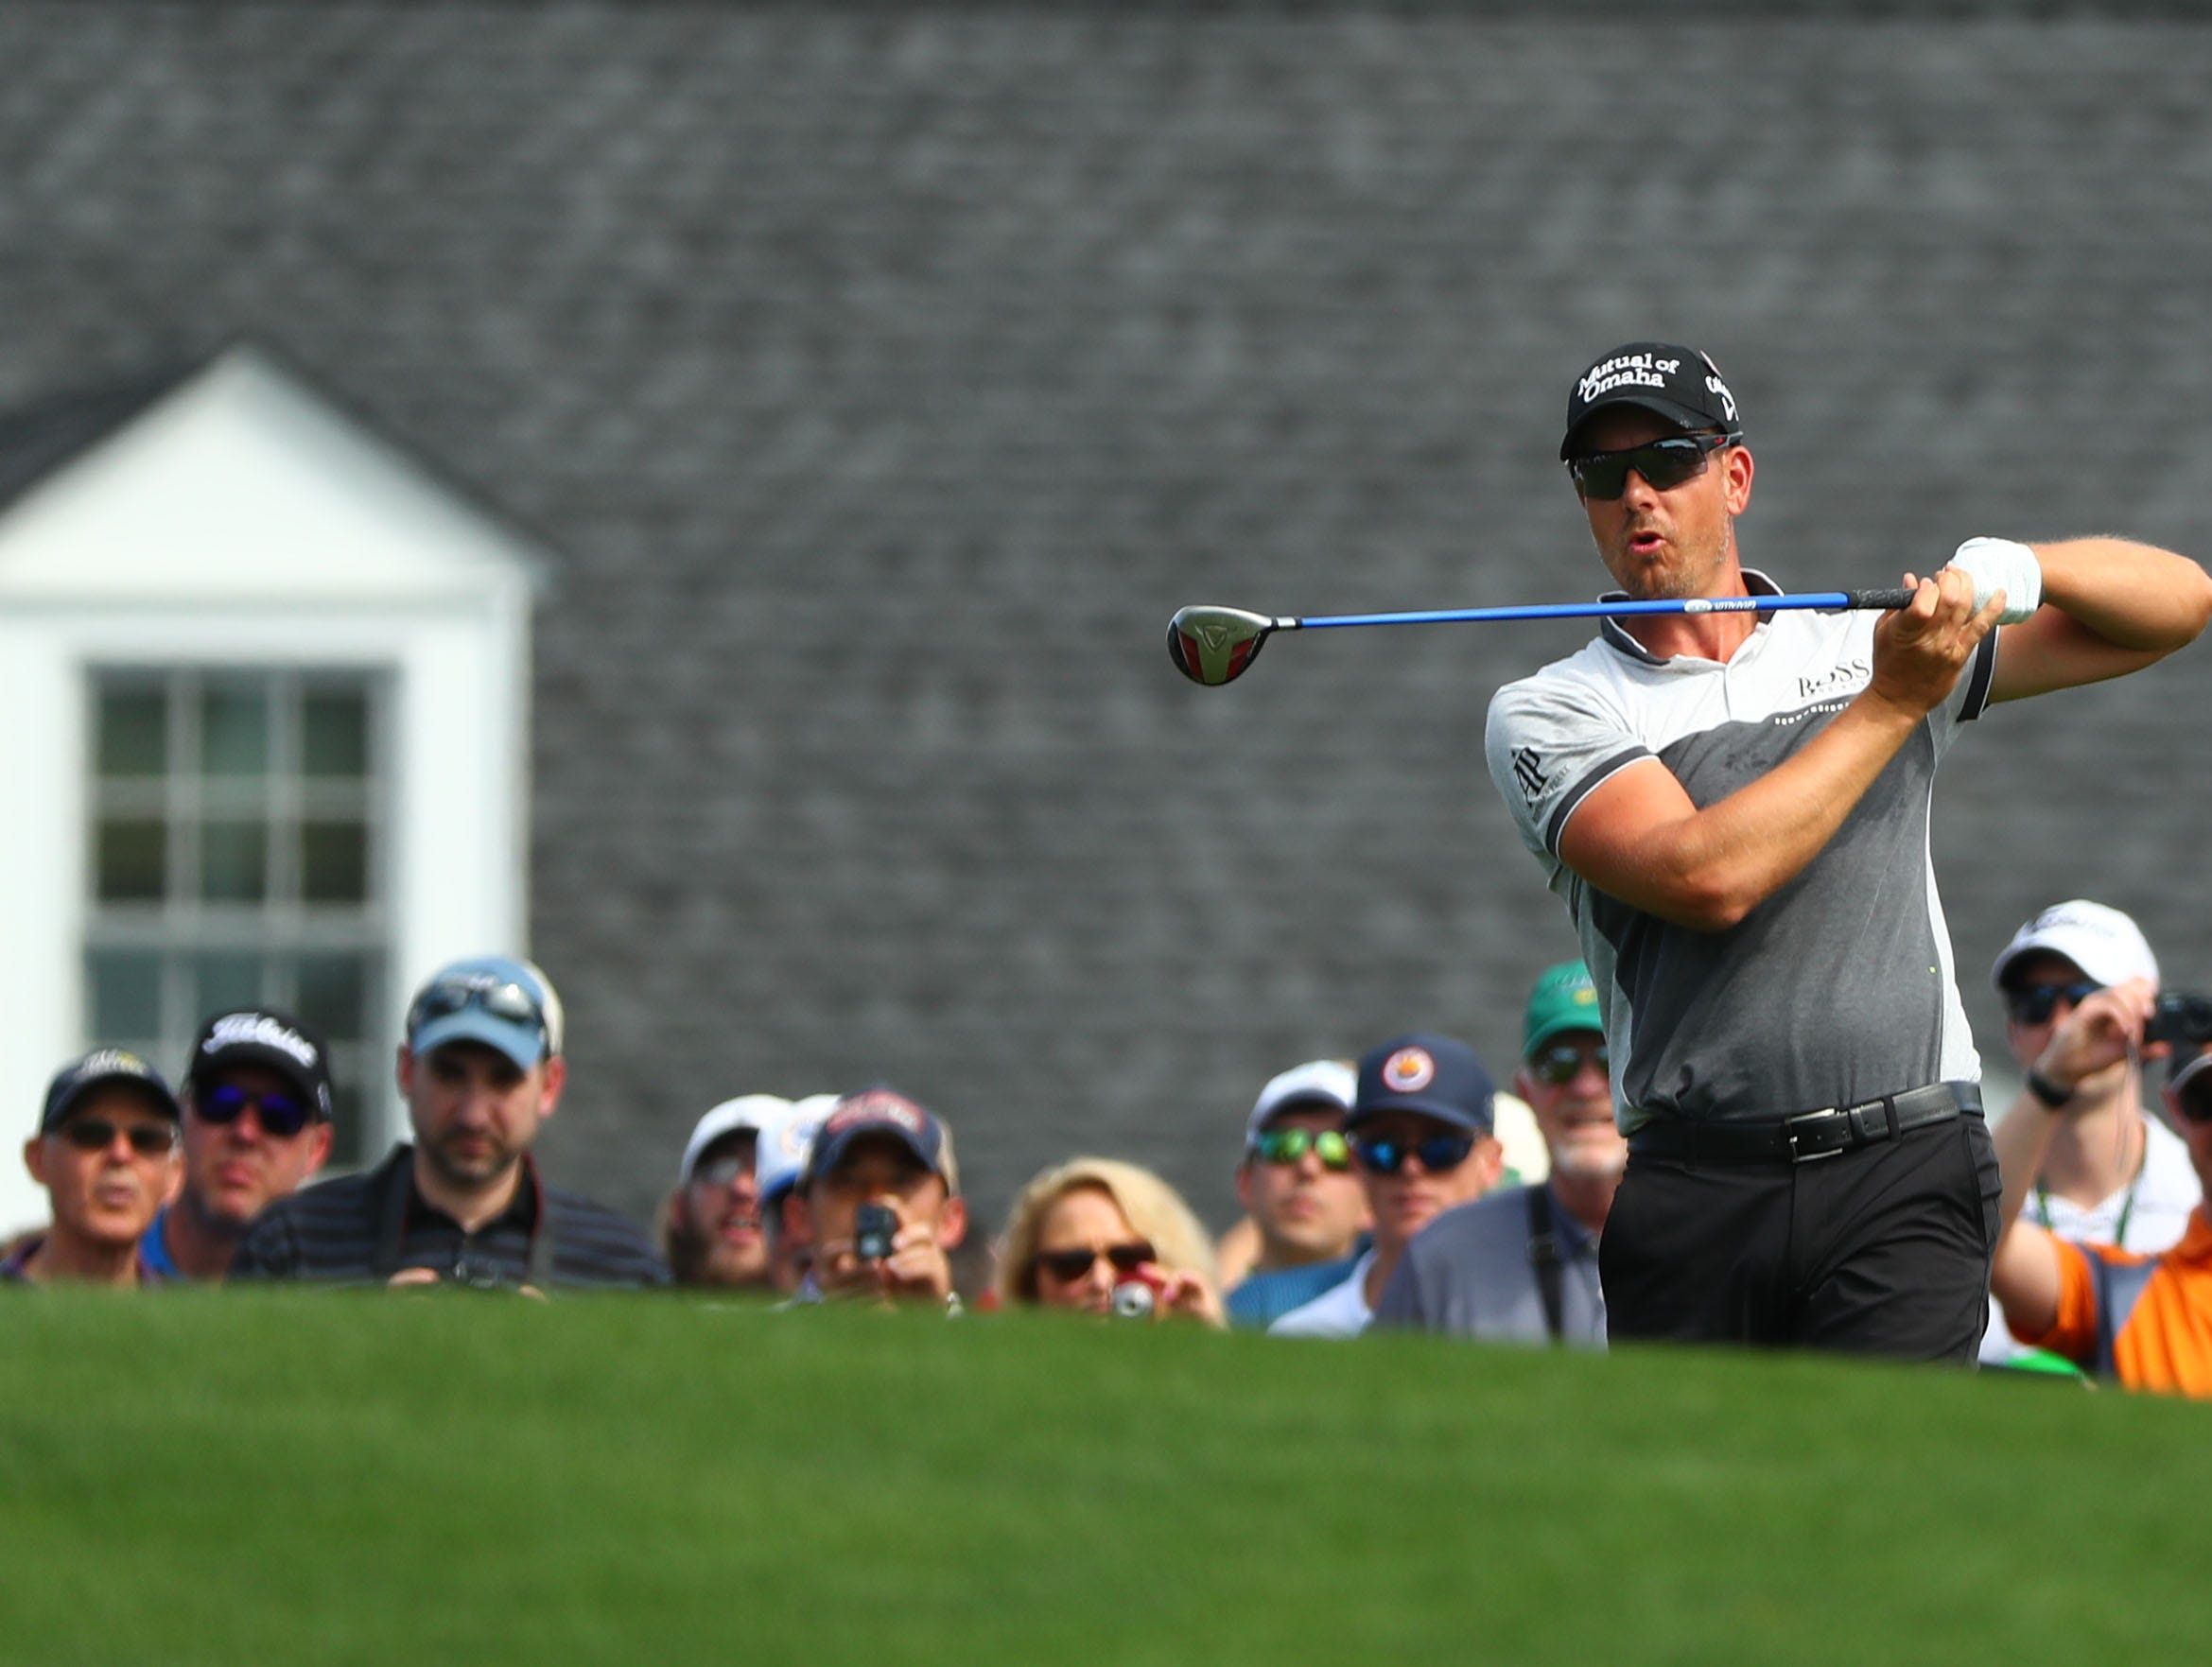 Apr 9, 2019; Augusta, GA, USA; Henrik Stenson of Sweden reacts after hitting his drive on the first hole during a practice round for The Masters golf tournament at Augusta National Golf Club. Mandatory Credit: Rob Schumacher-USA TODAY Sports